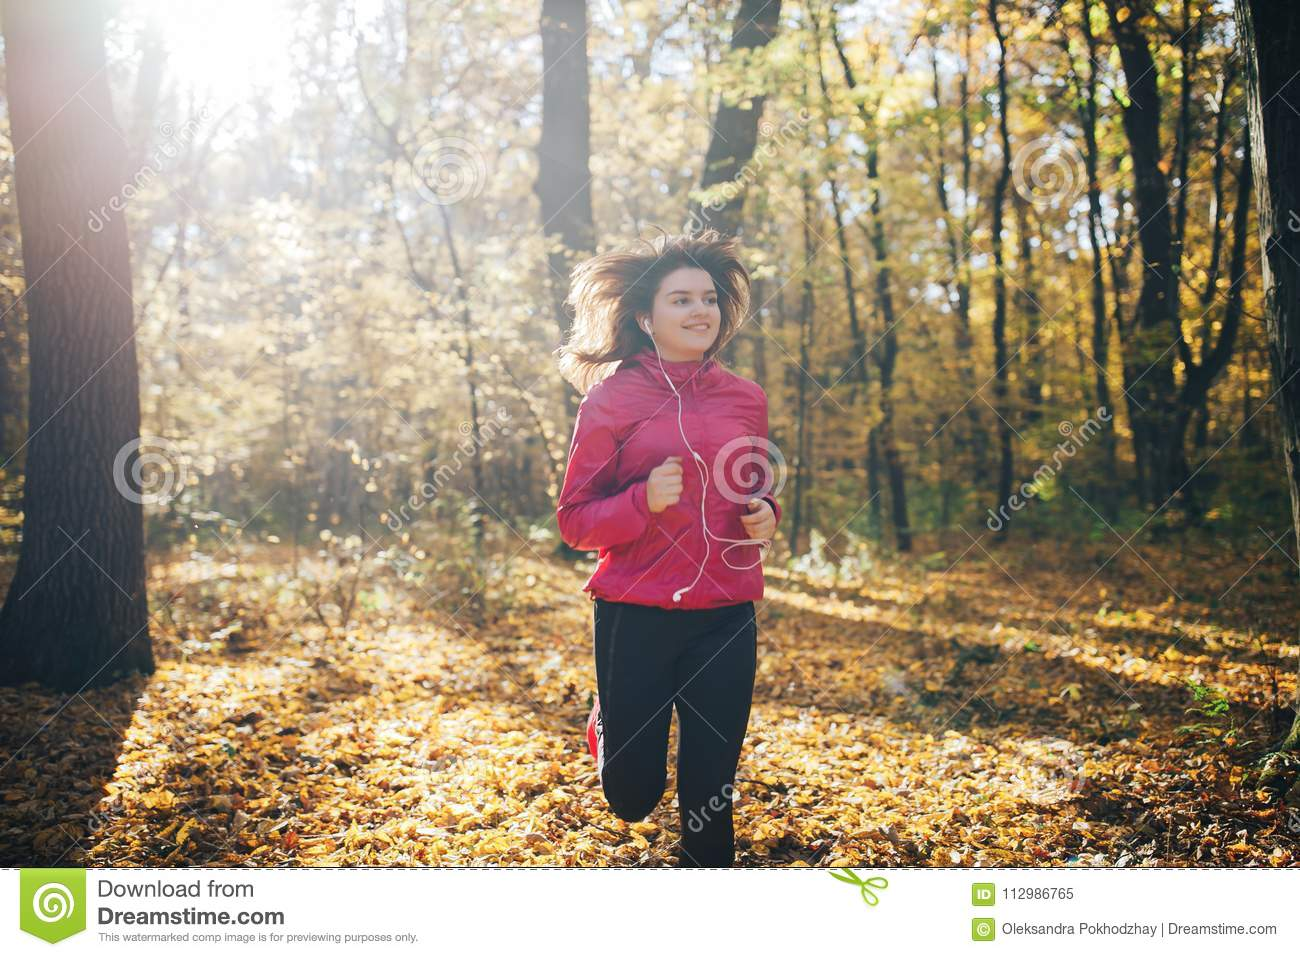 Woman running during autumn morning forest